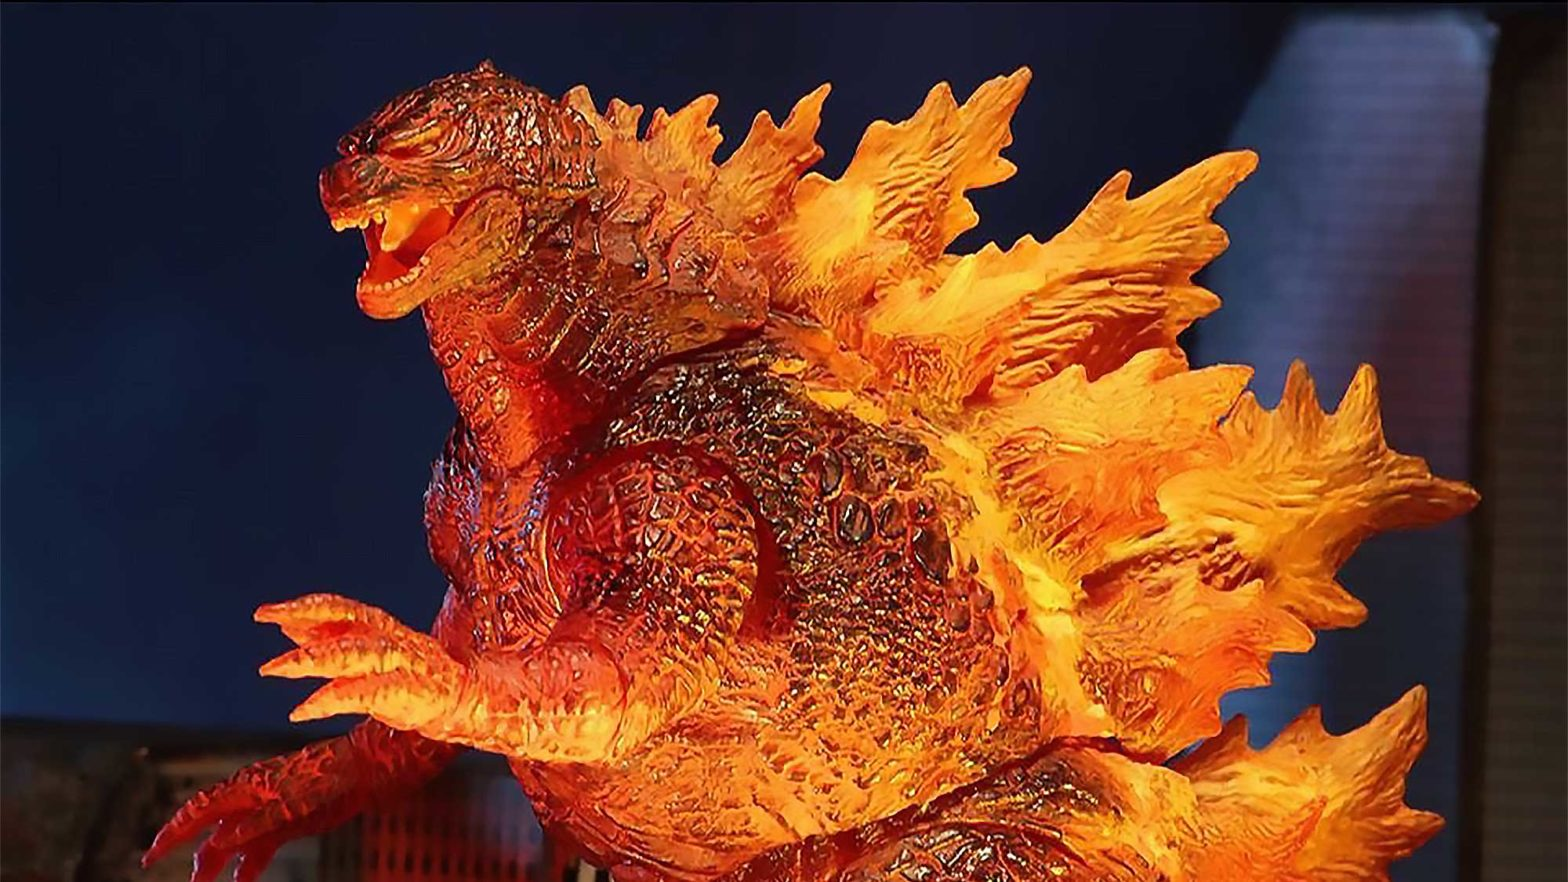 NECA 2019 Burning Godzilla Figure Target Exclusive